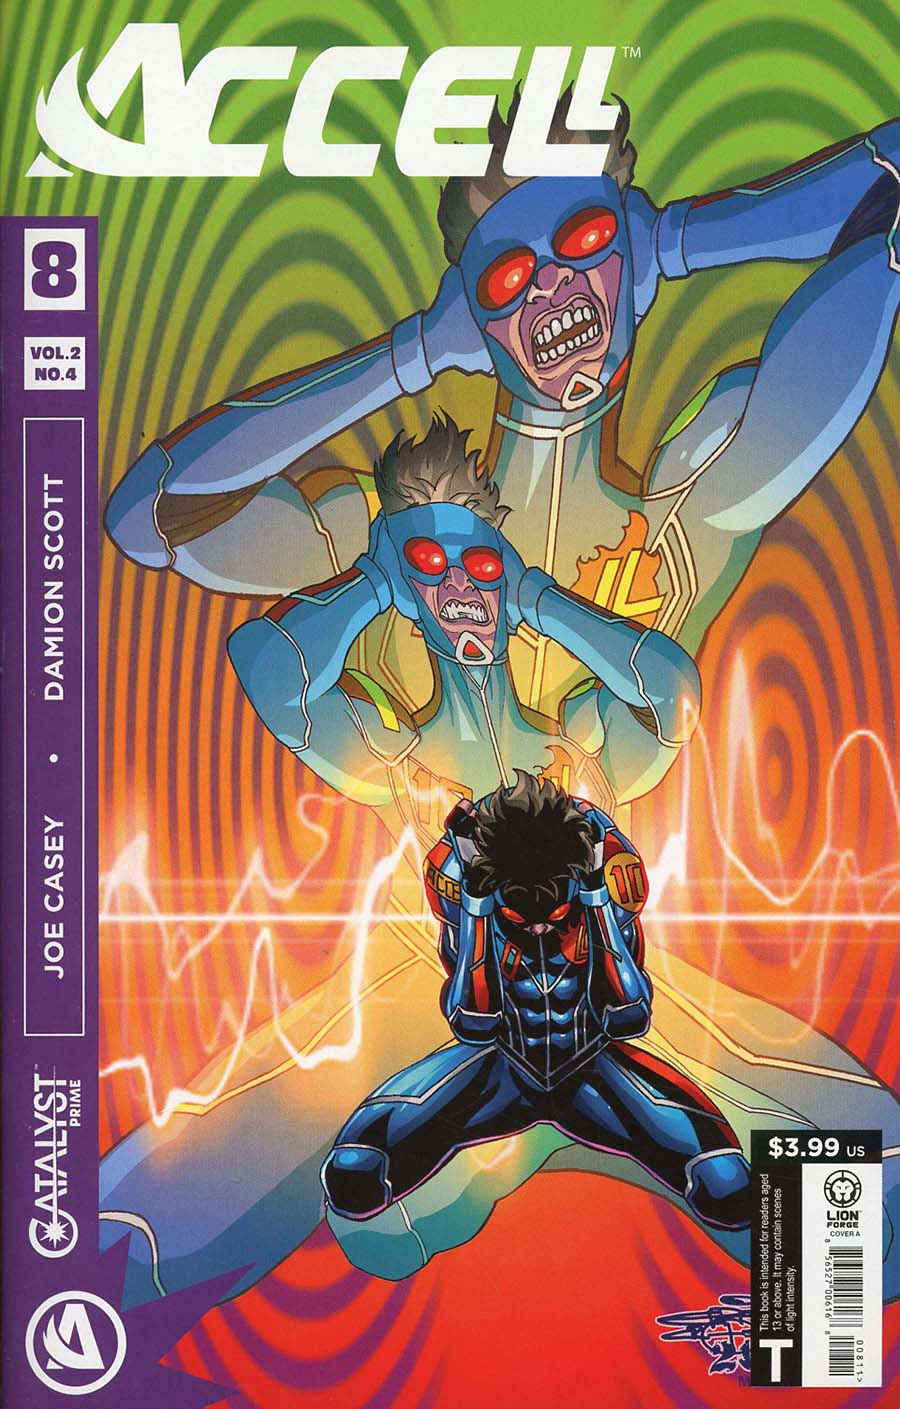 Catalyst Prime Accell #8